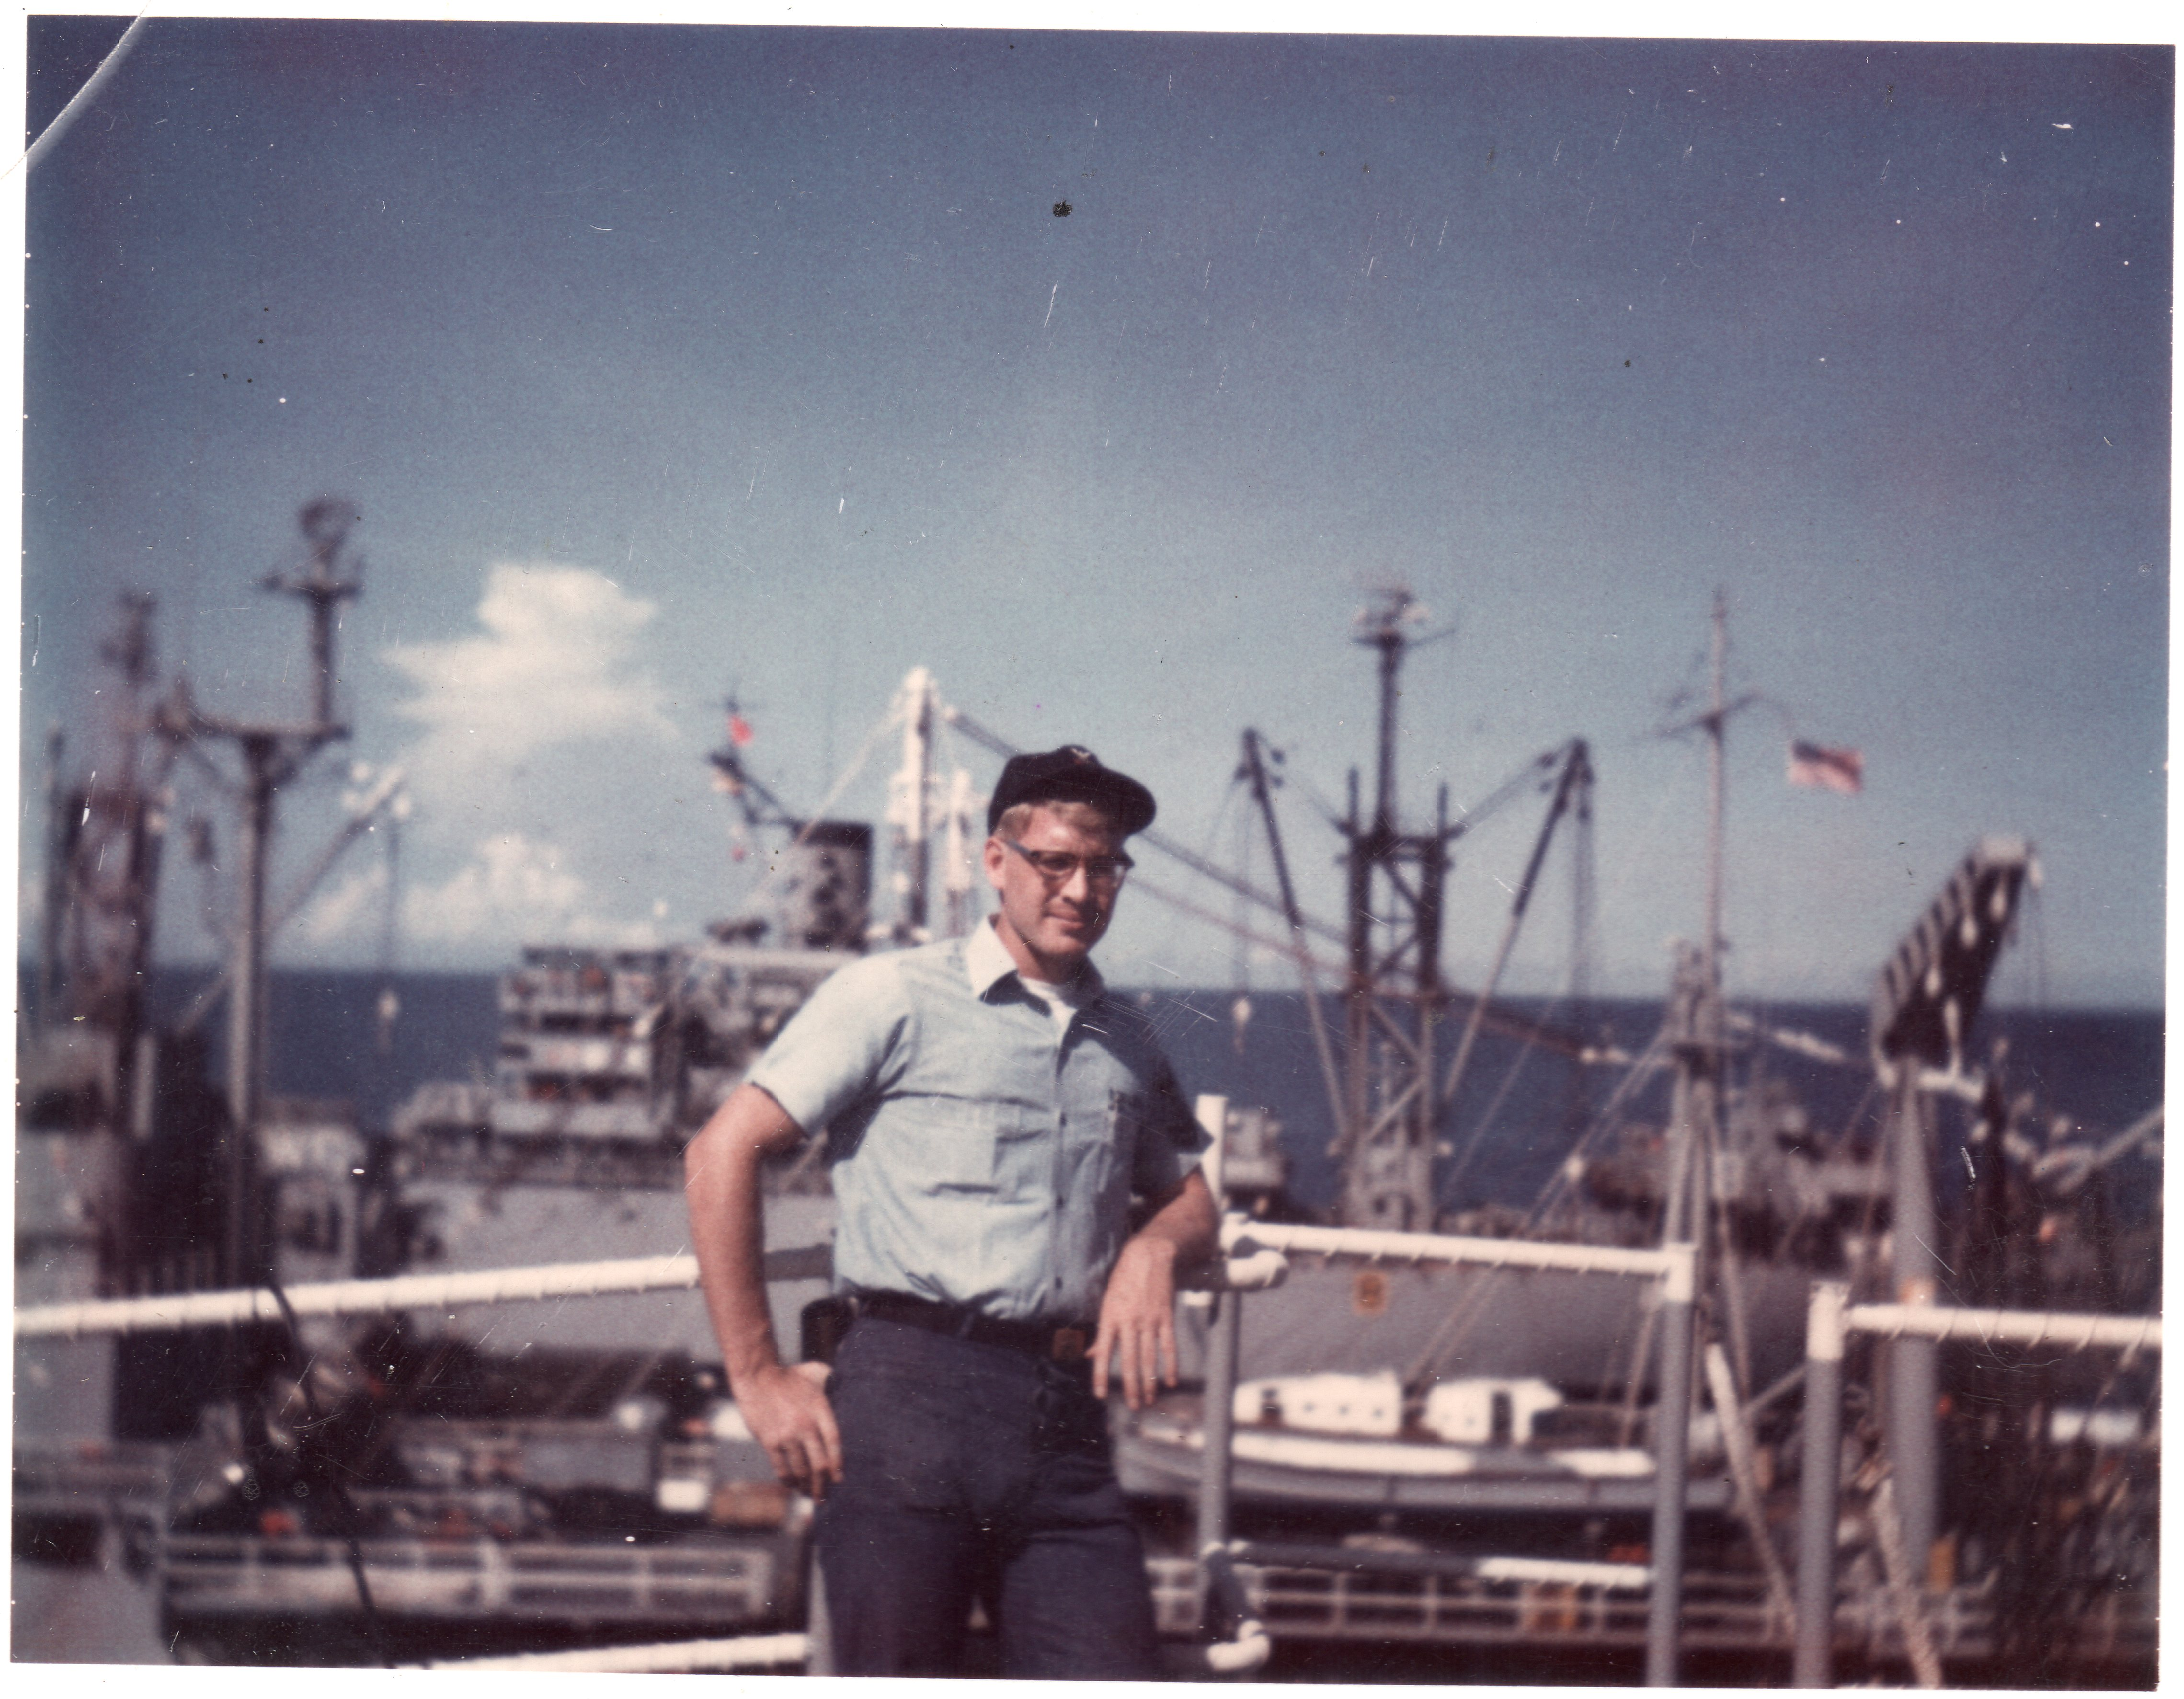 Chris Navy July 1969